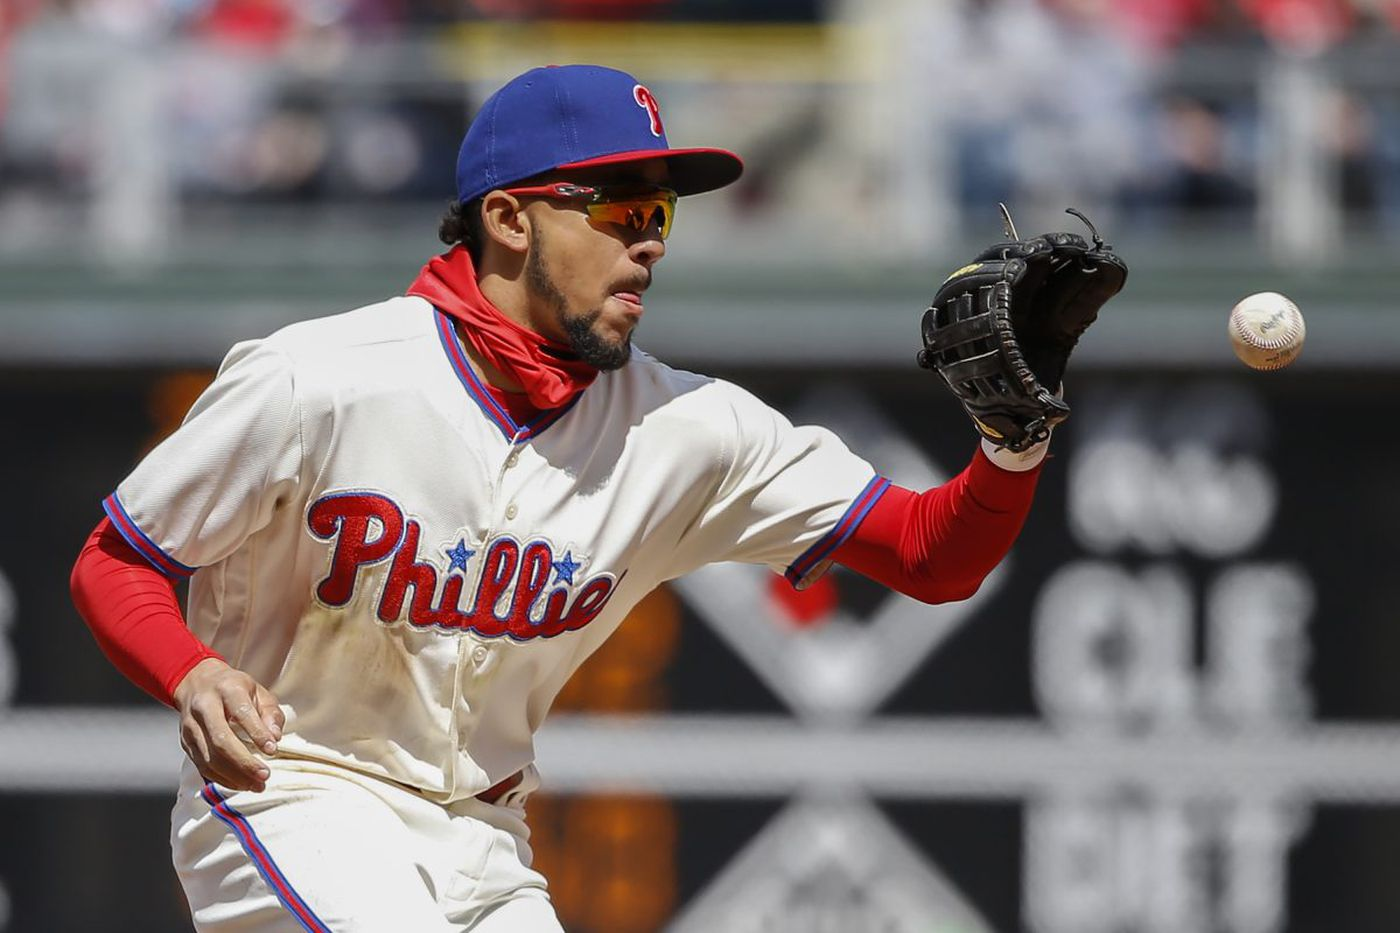 Phillies shortstop J.P. Crawford suffers strained forearm, could land on DL